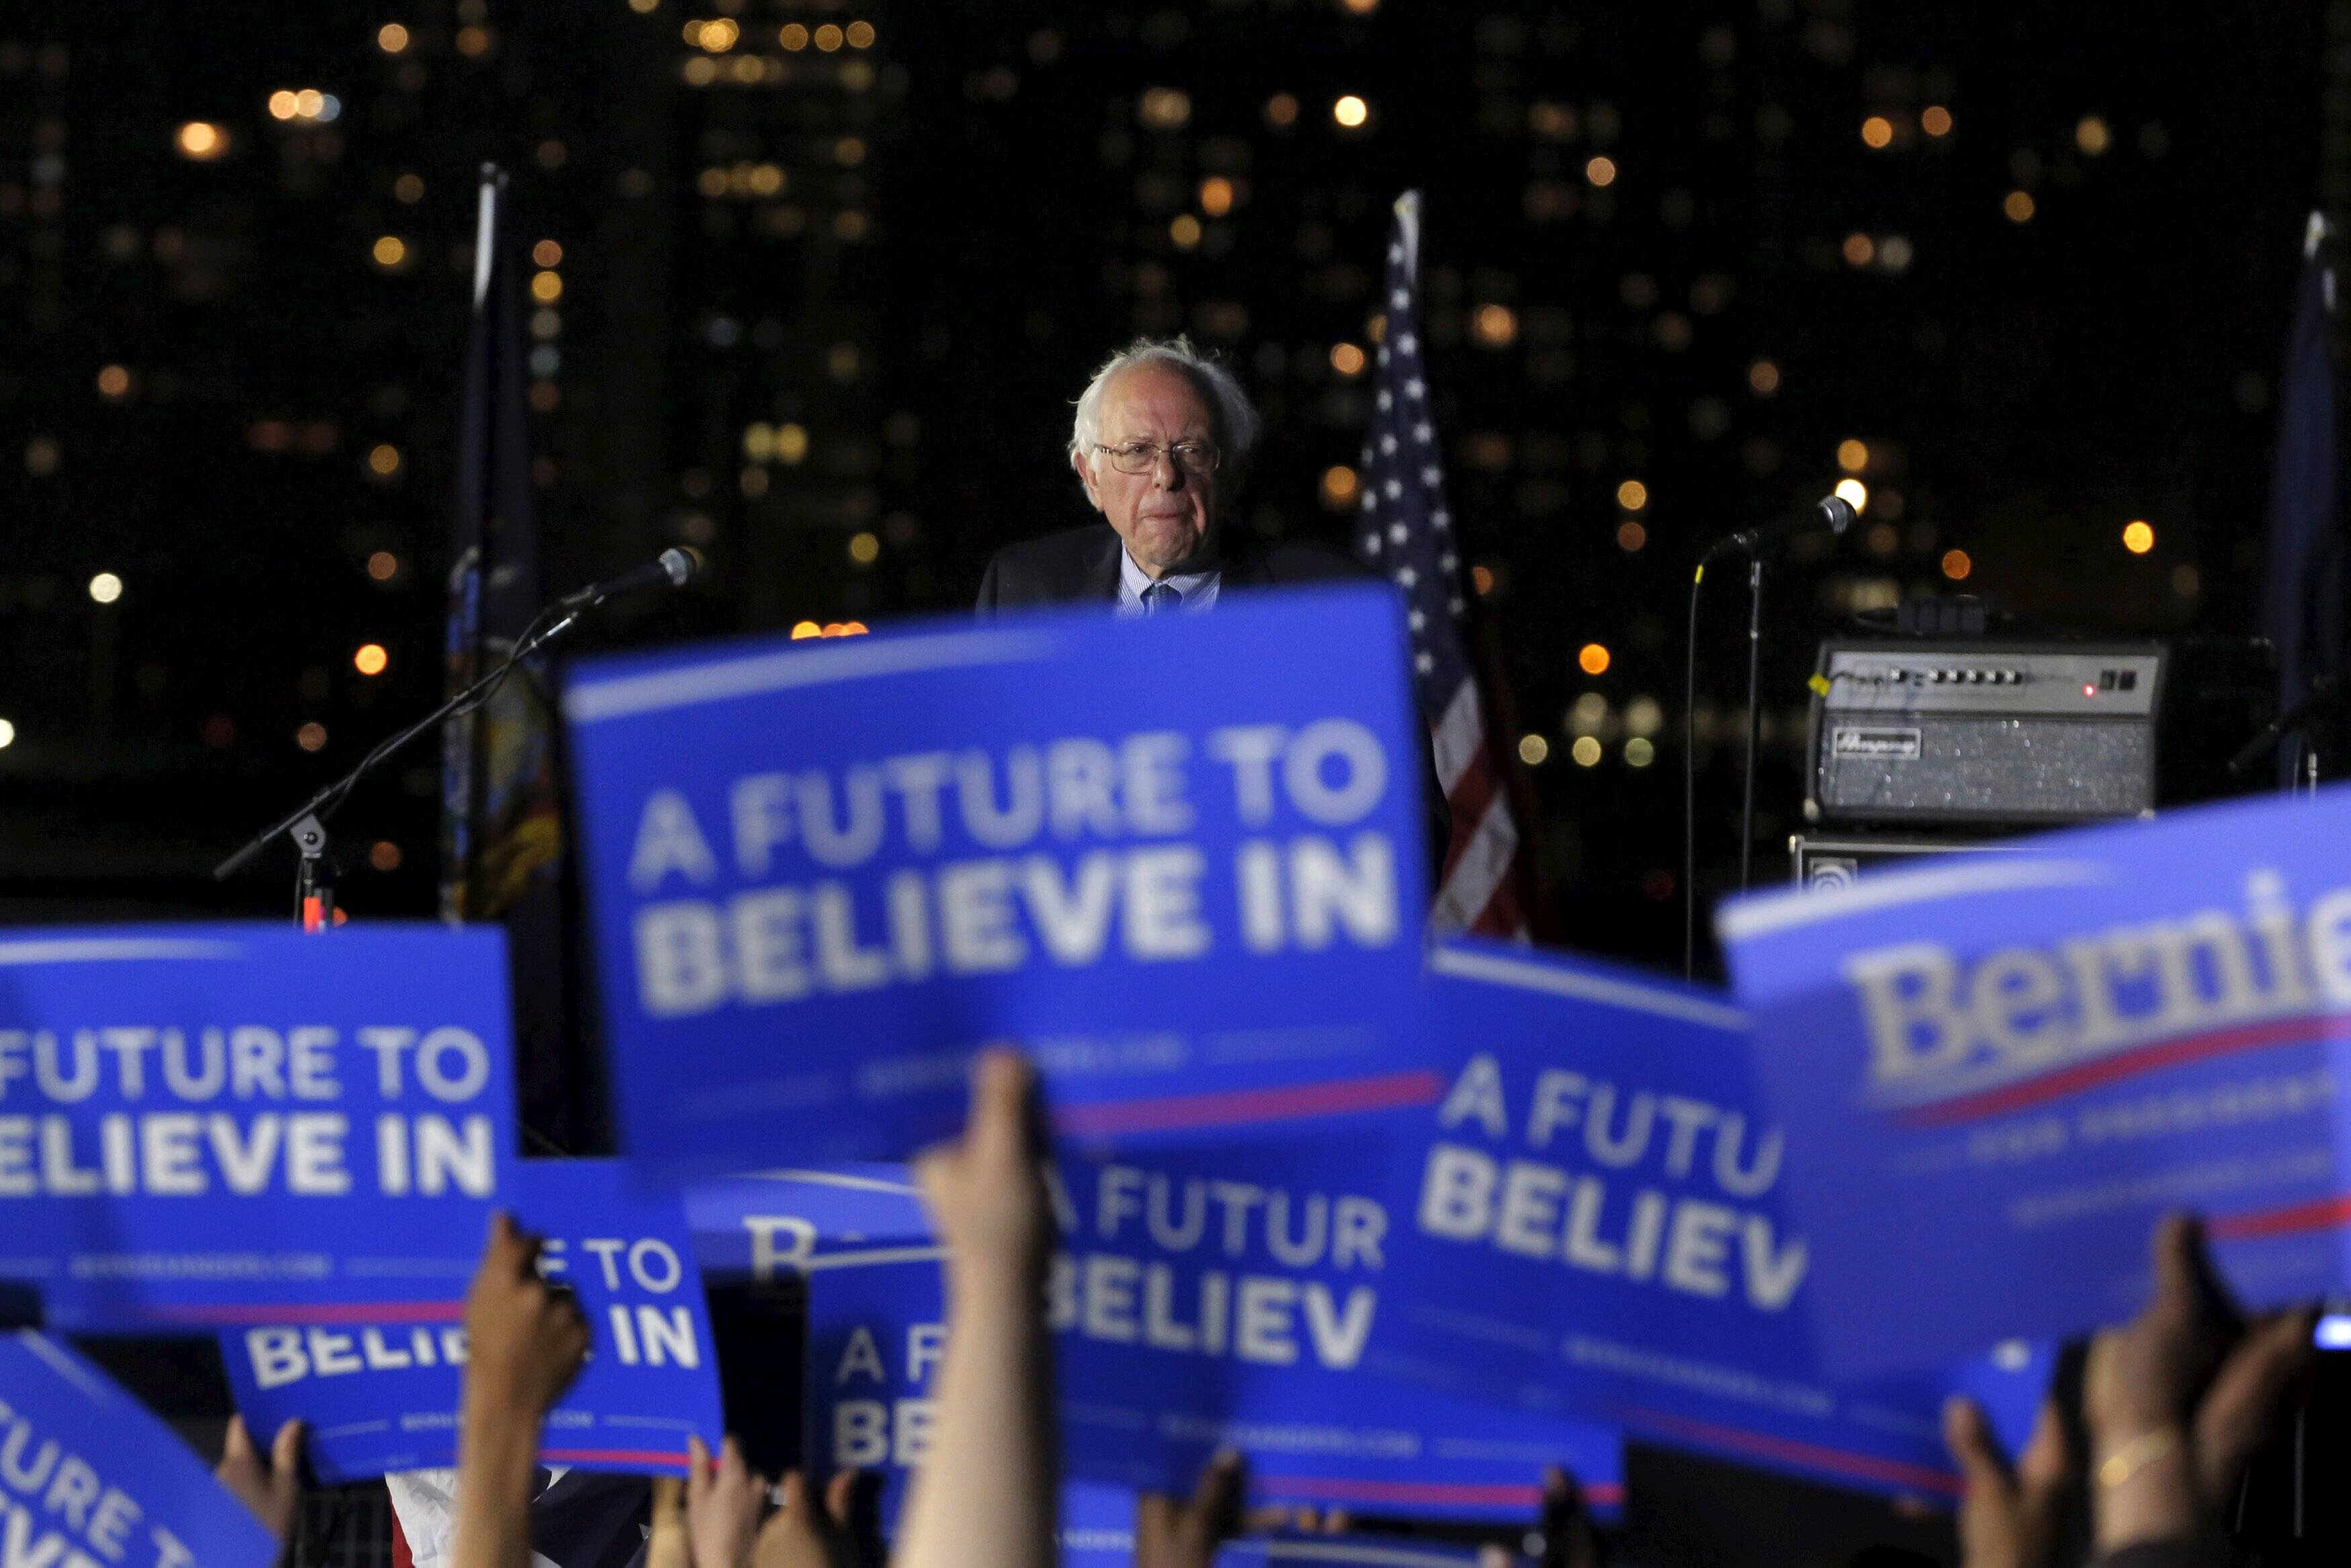 Democratic U.S. presidential candidate Bernie Sanders speaks at a campaign rally at Hunter's Point in the Queens borough of New York, U.S., April 18, 2016. REUTERS/Lucas Jackson